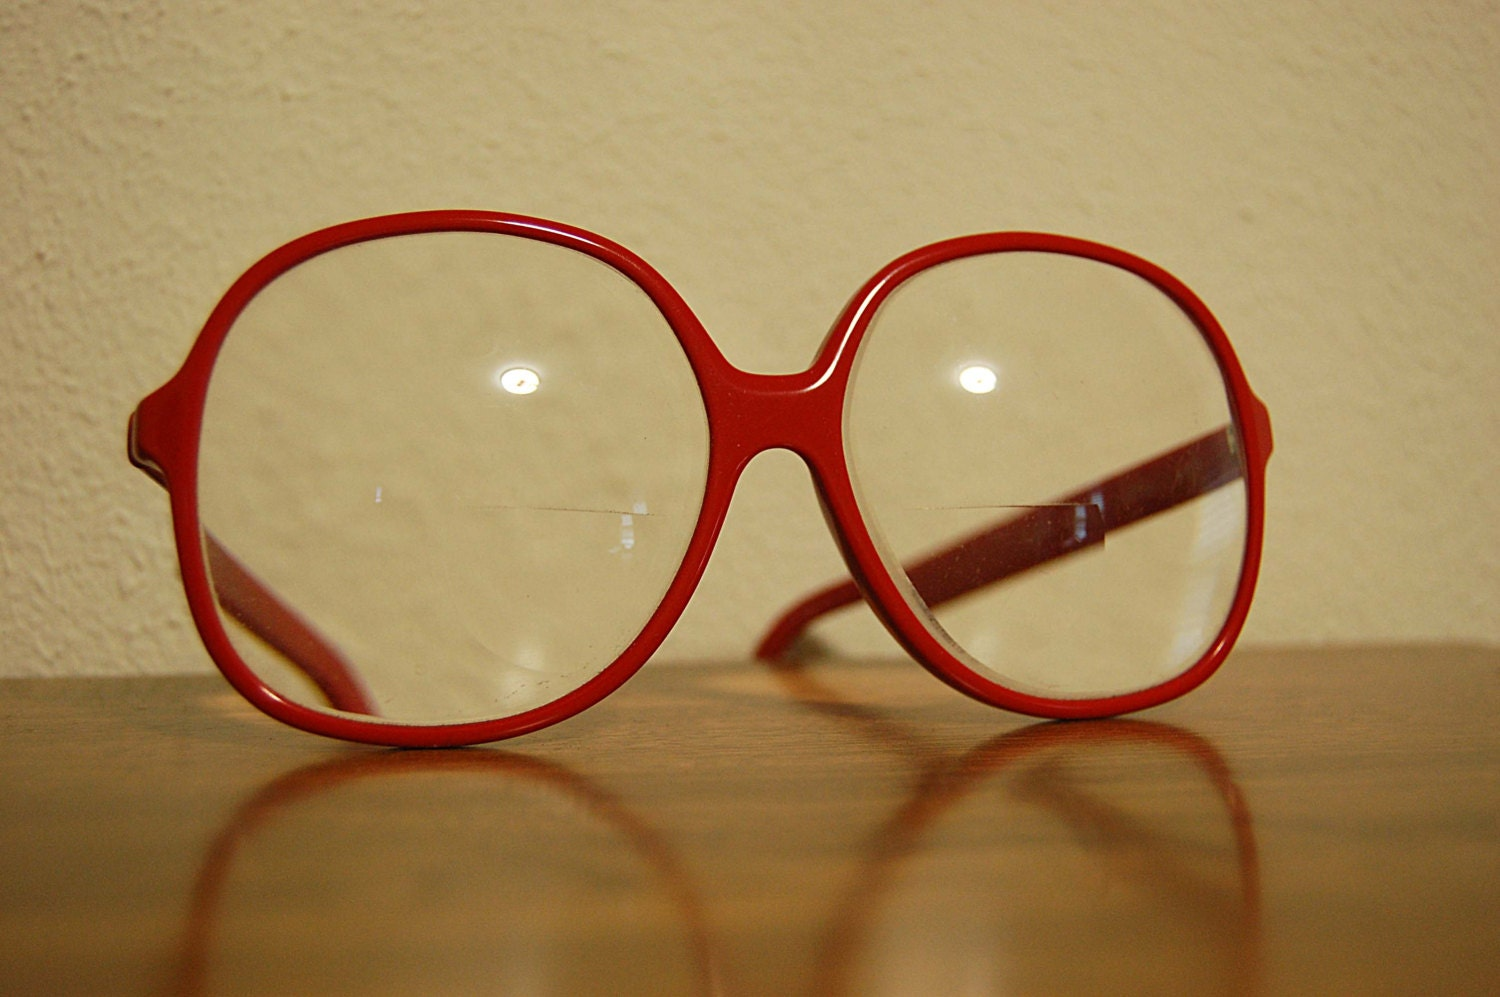 Big Red Frame Glasses : LIZ CLAIBORNE vintage 70s 80s big RED plastic eye glass frames